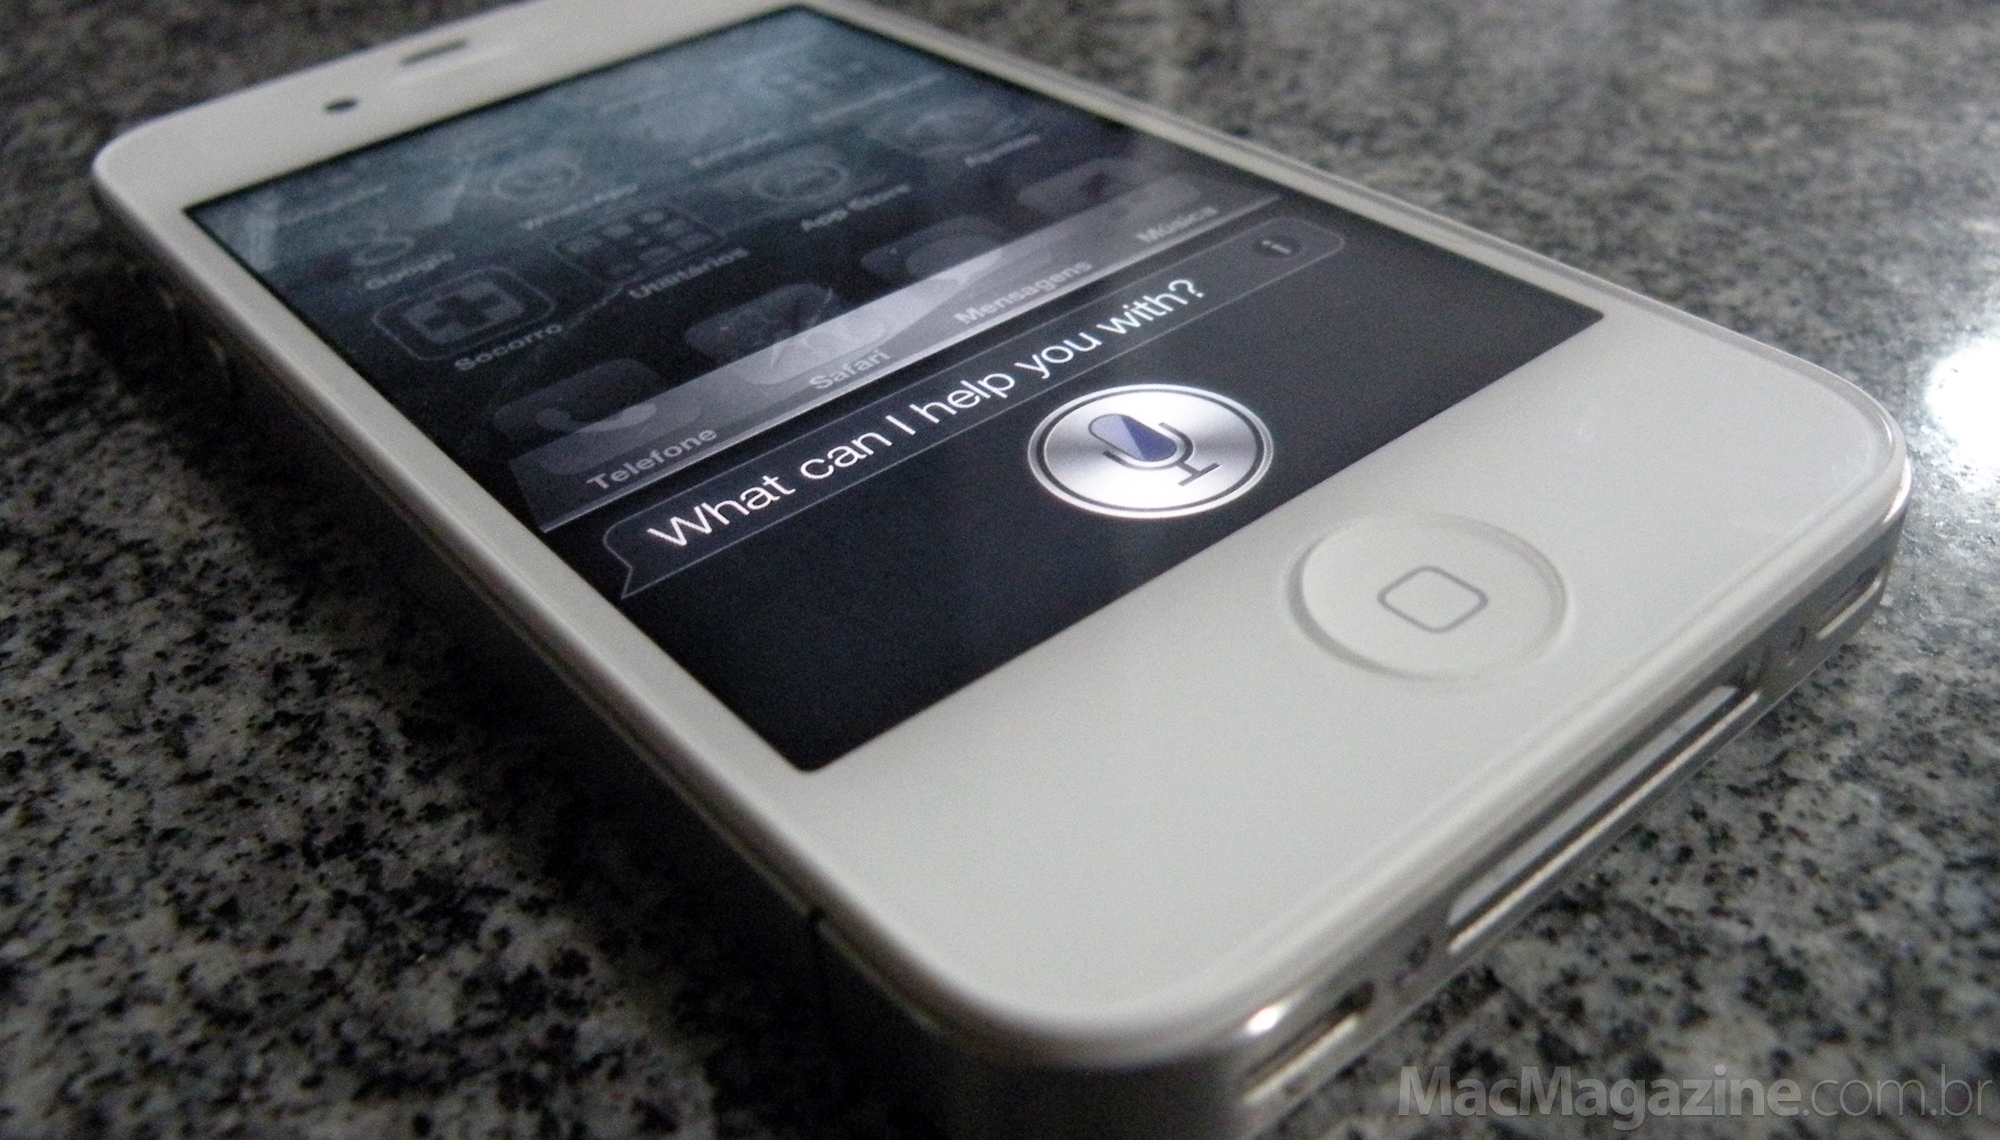 Siri no iPhone 4S (by MacMagazine)